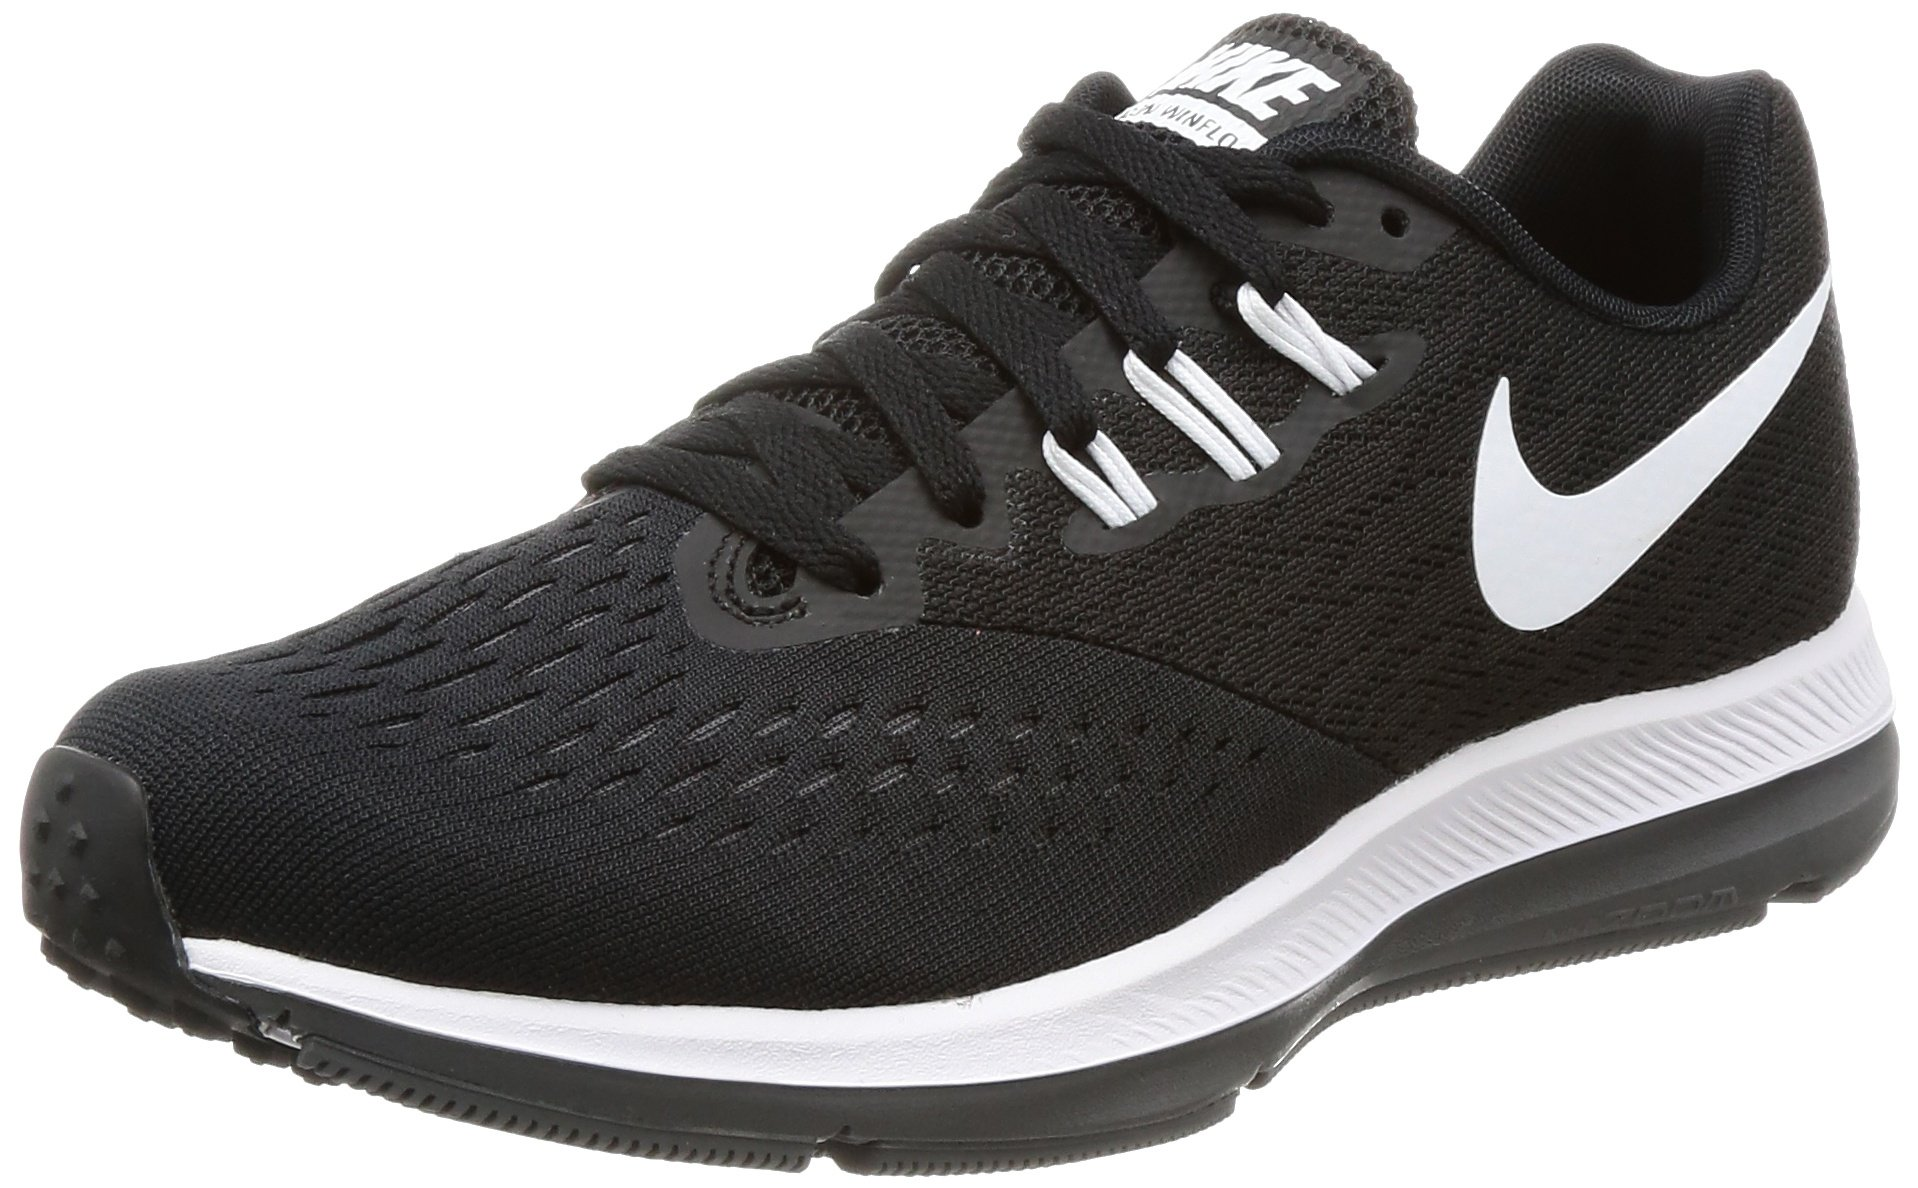 779088002551a Galleon - Nike Women s Air Zoom Winflo 4 Running Shoe